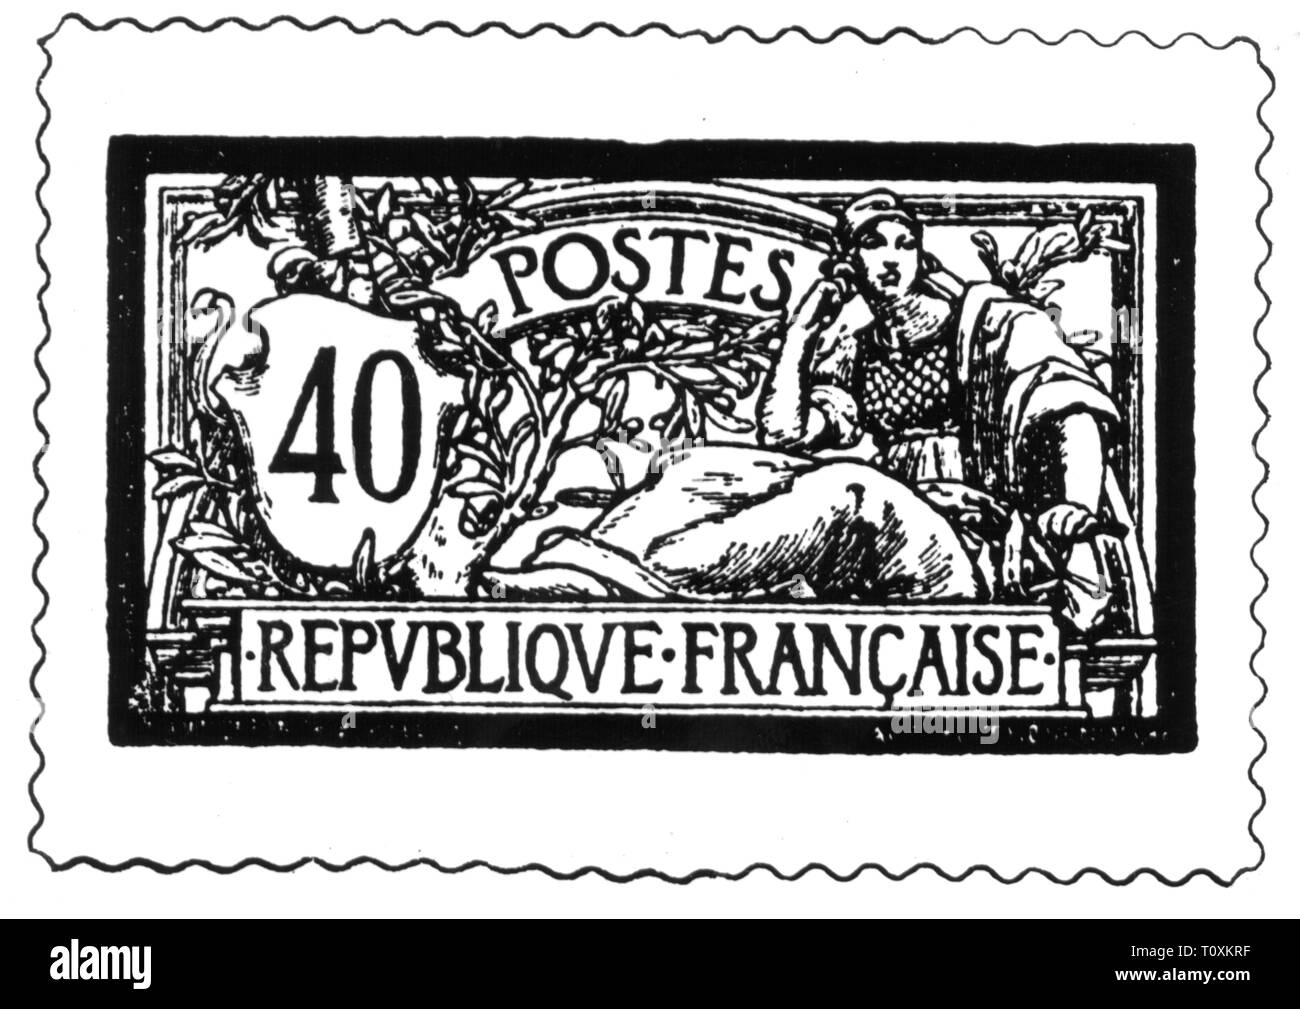 mail, postage stamps, France, 40 centimes postage stamp, 1920, Additional-Rights-Clearance-Info-Not-Available - Stock Image